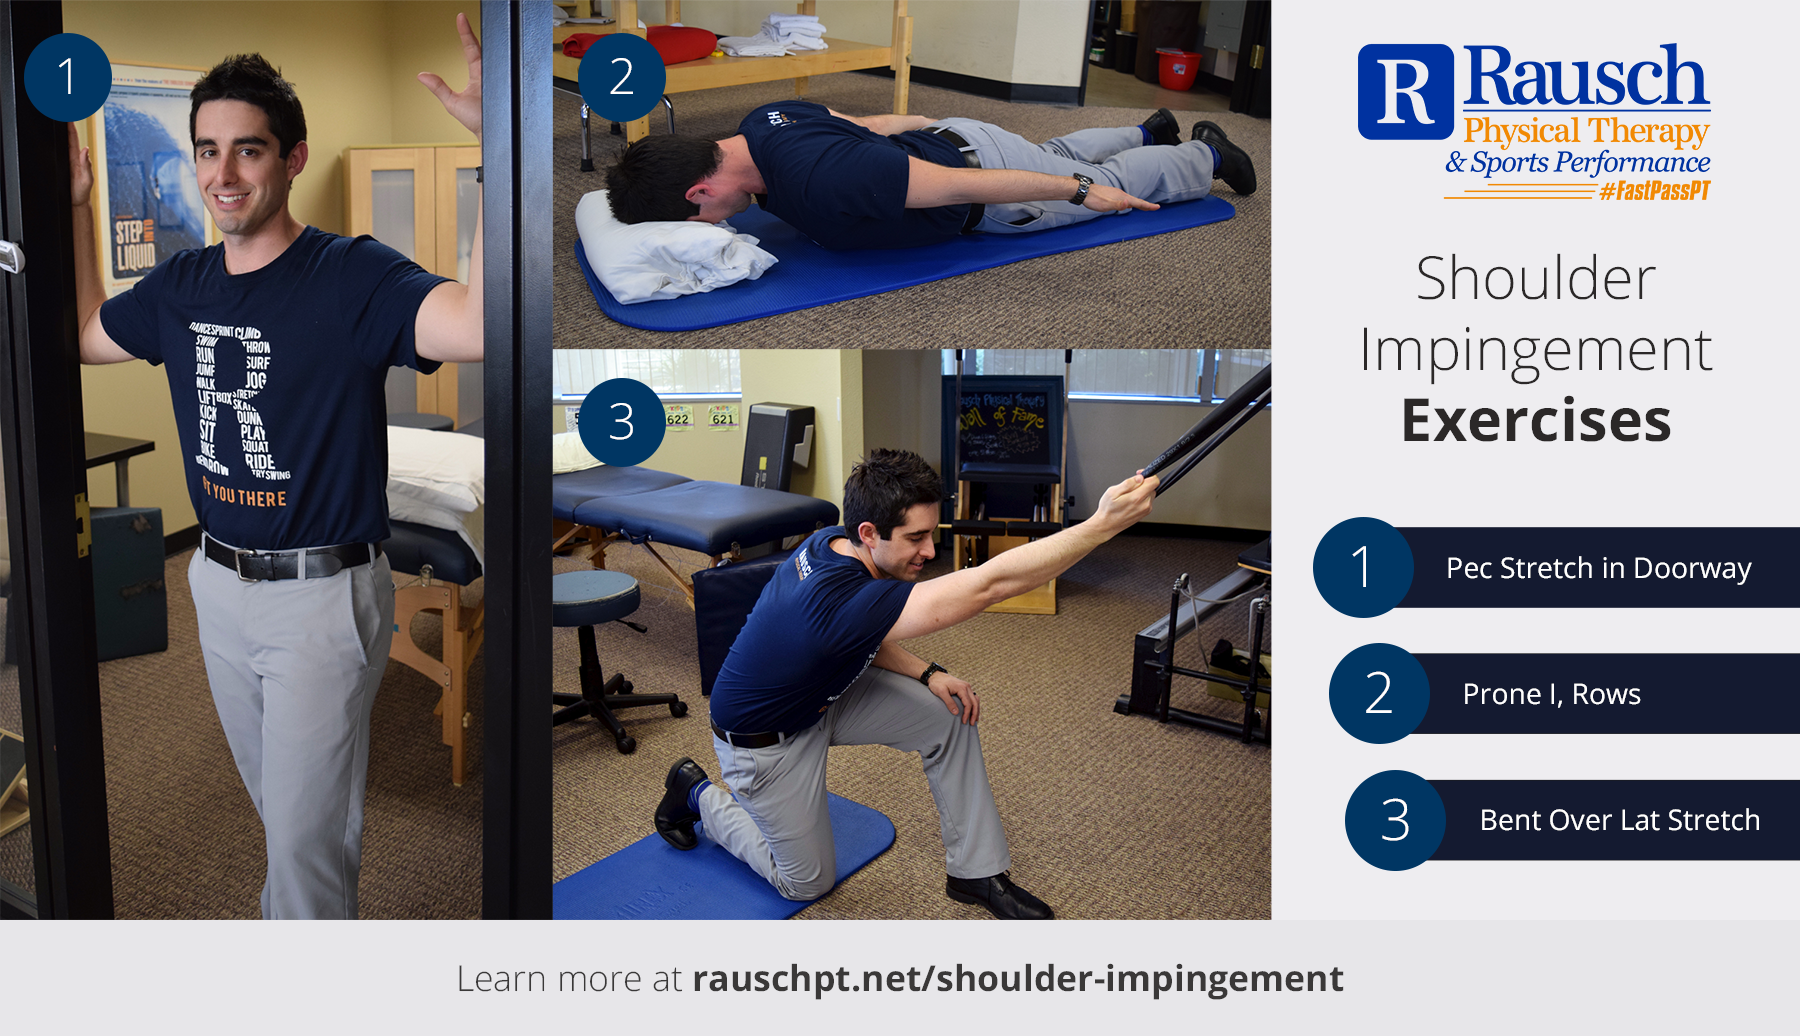 2Jon-ShoulderImpingement-Exercises